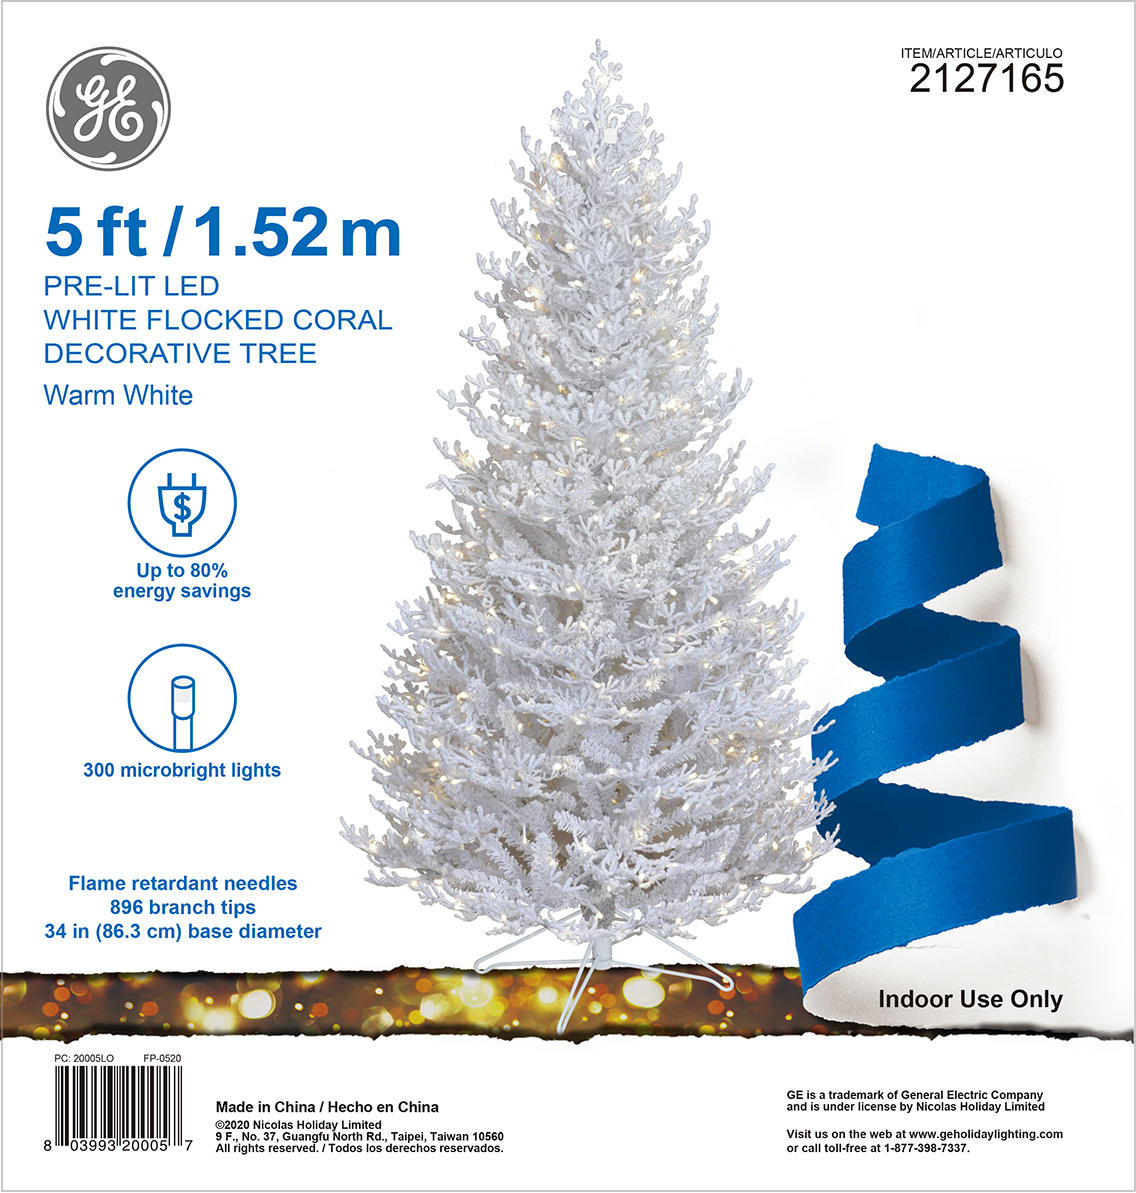 20005 - GE White Flocked Coral Decorative Tree, 5 ft., StayBright® LED, 300ct MicroBright Lights ...